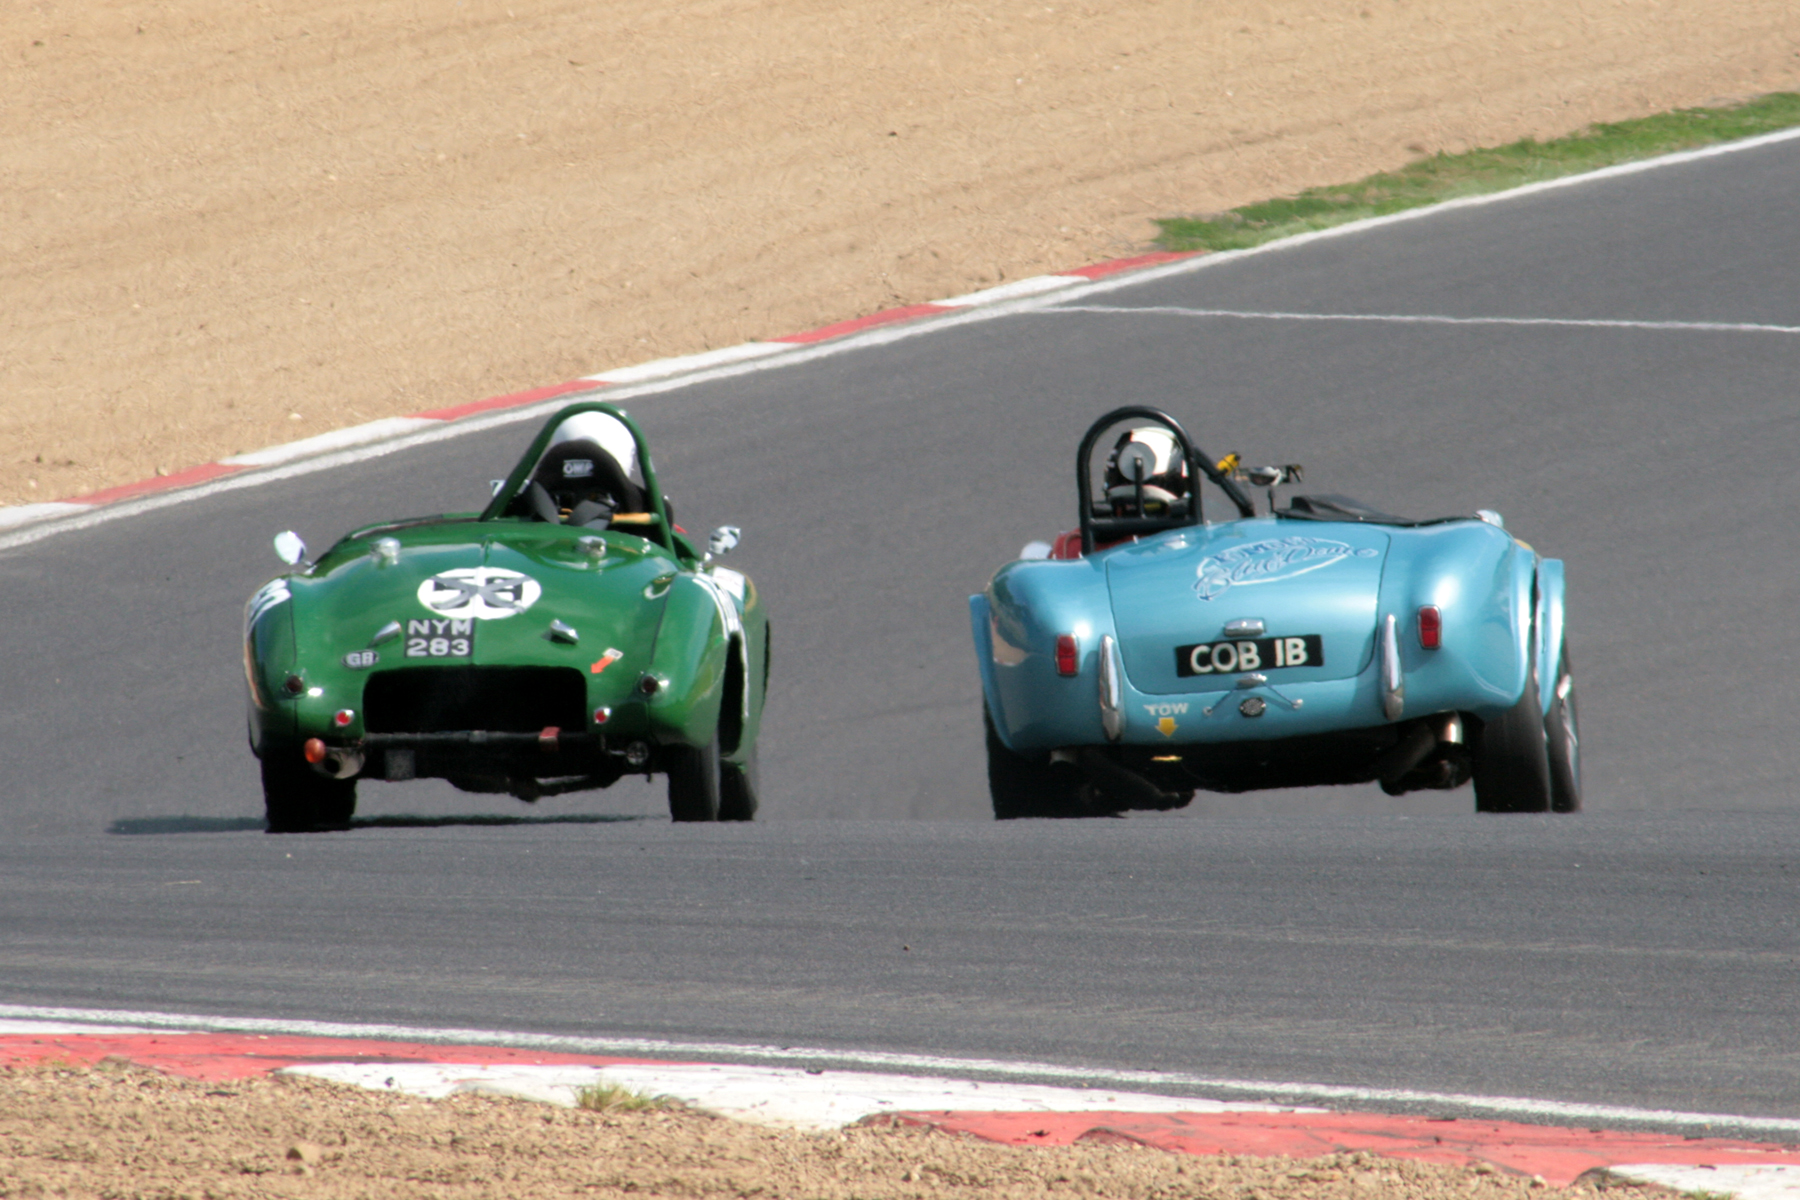 The fastest and the slowest, but 13 years, 3.2 litres, 250 bhp, fatter tyres, not to mention broadness of beam, separates Harry Naergar's 1951 Jowett Jupiter & Kevin Kivlochan's 1964 AC Cobra. Of course the AC Ace from which the Cobra was developed was a little closer to the Jowett in age terms but unlike the AC, the later R4 version of the Jowett Jupiter was, sadly, Jowett's last throw of the dice - only 3 were built!